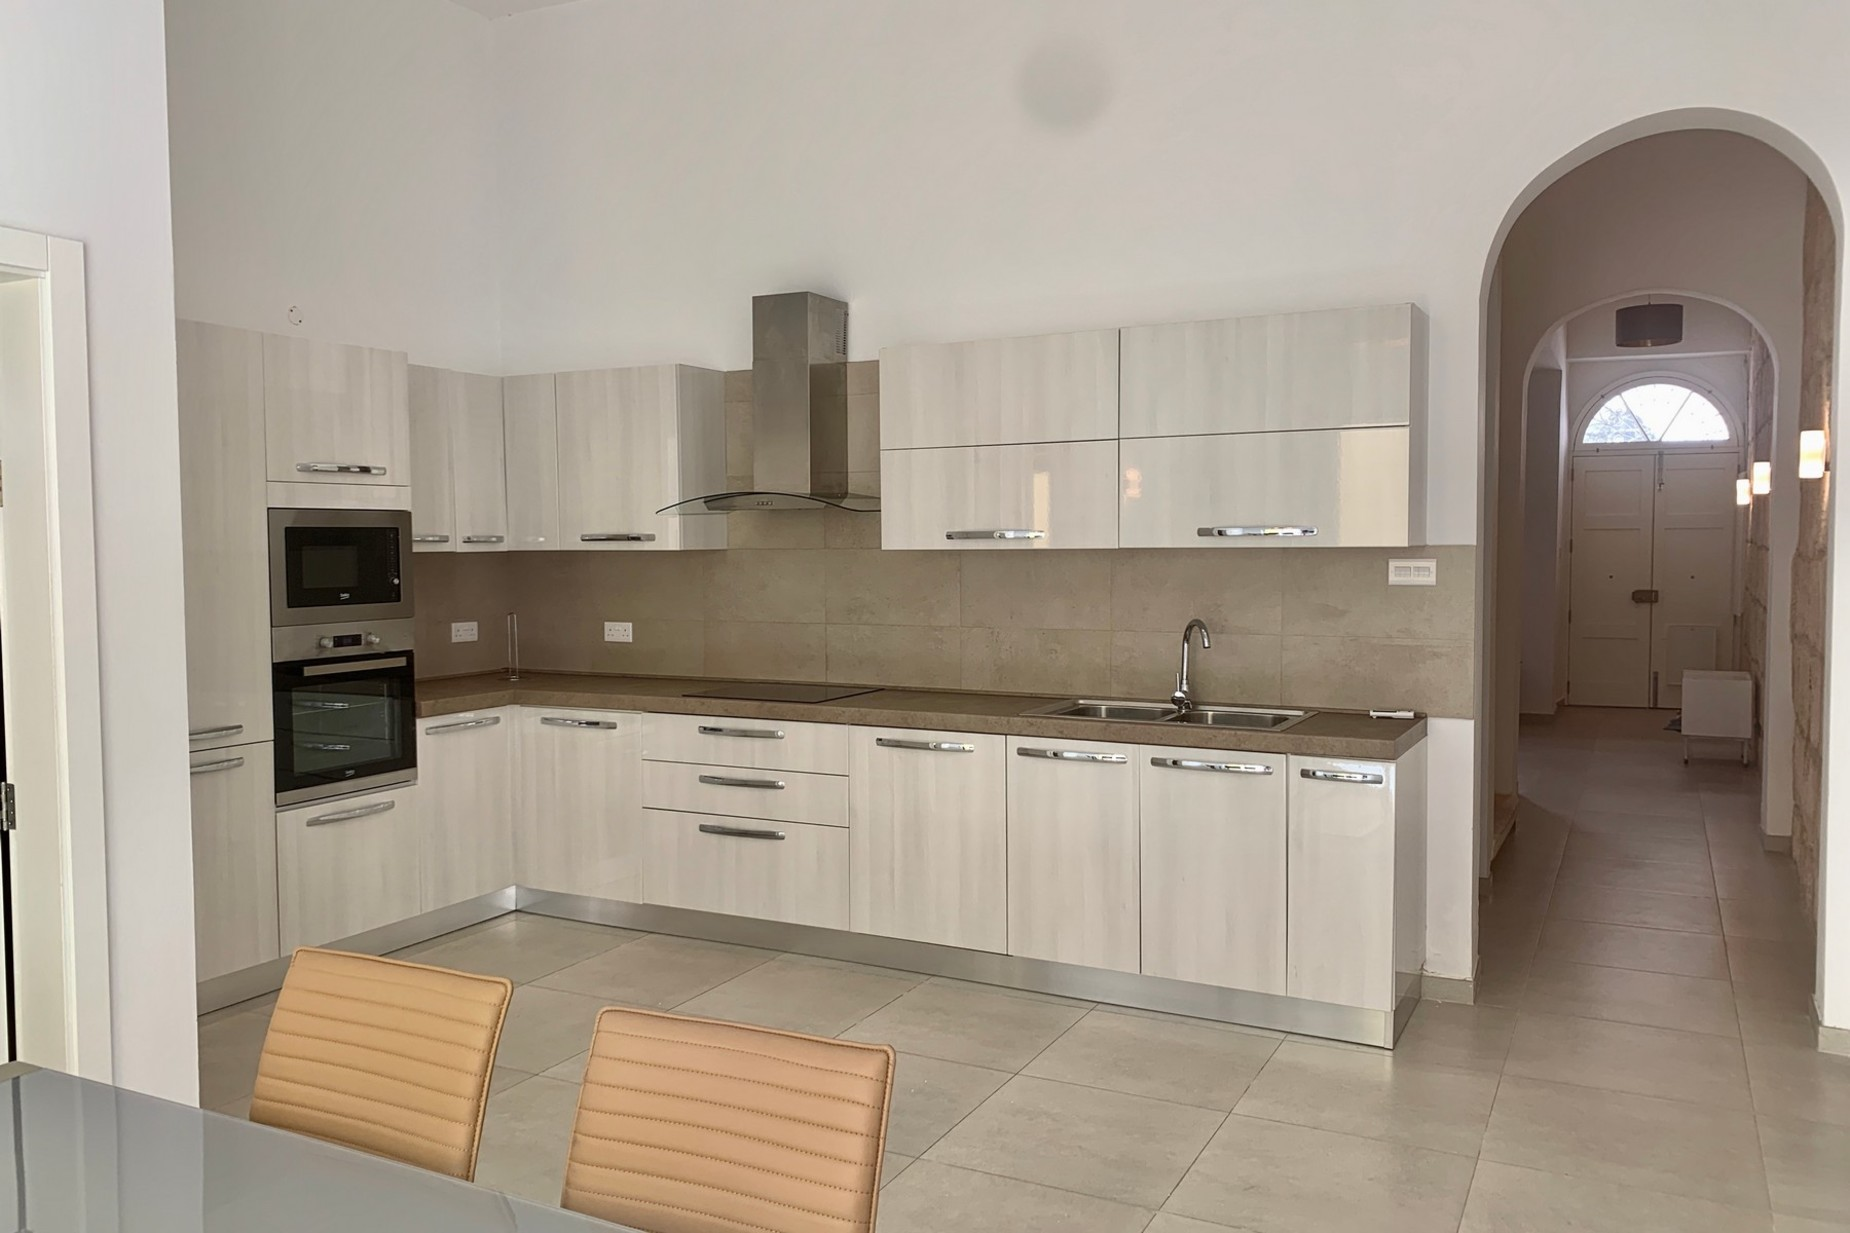 3 bed Town House For Rent in Mellieha, Mellieha - thumb 5